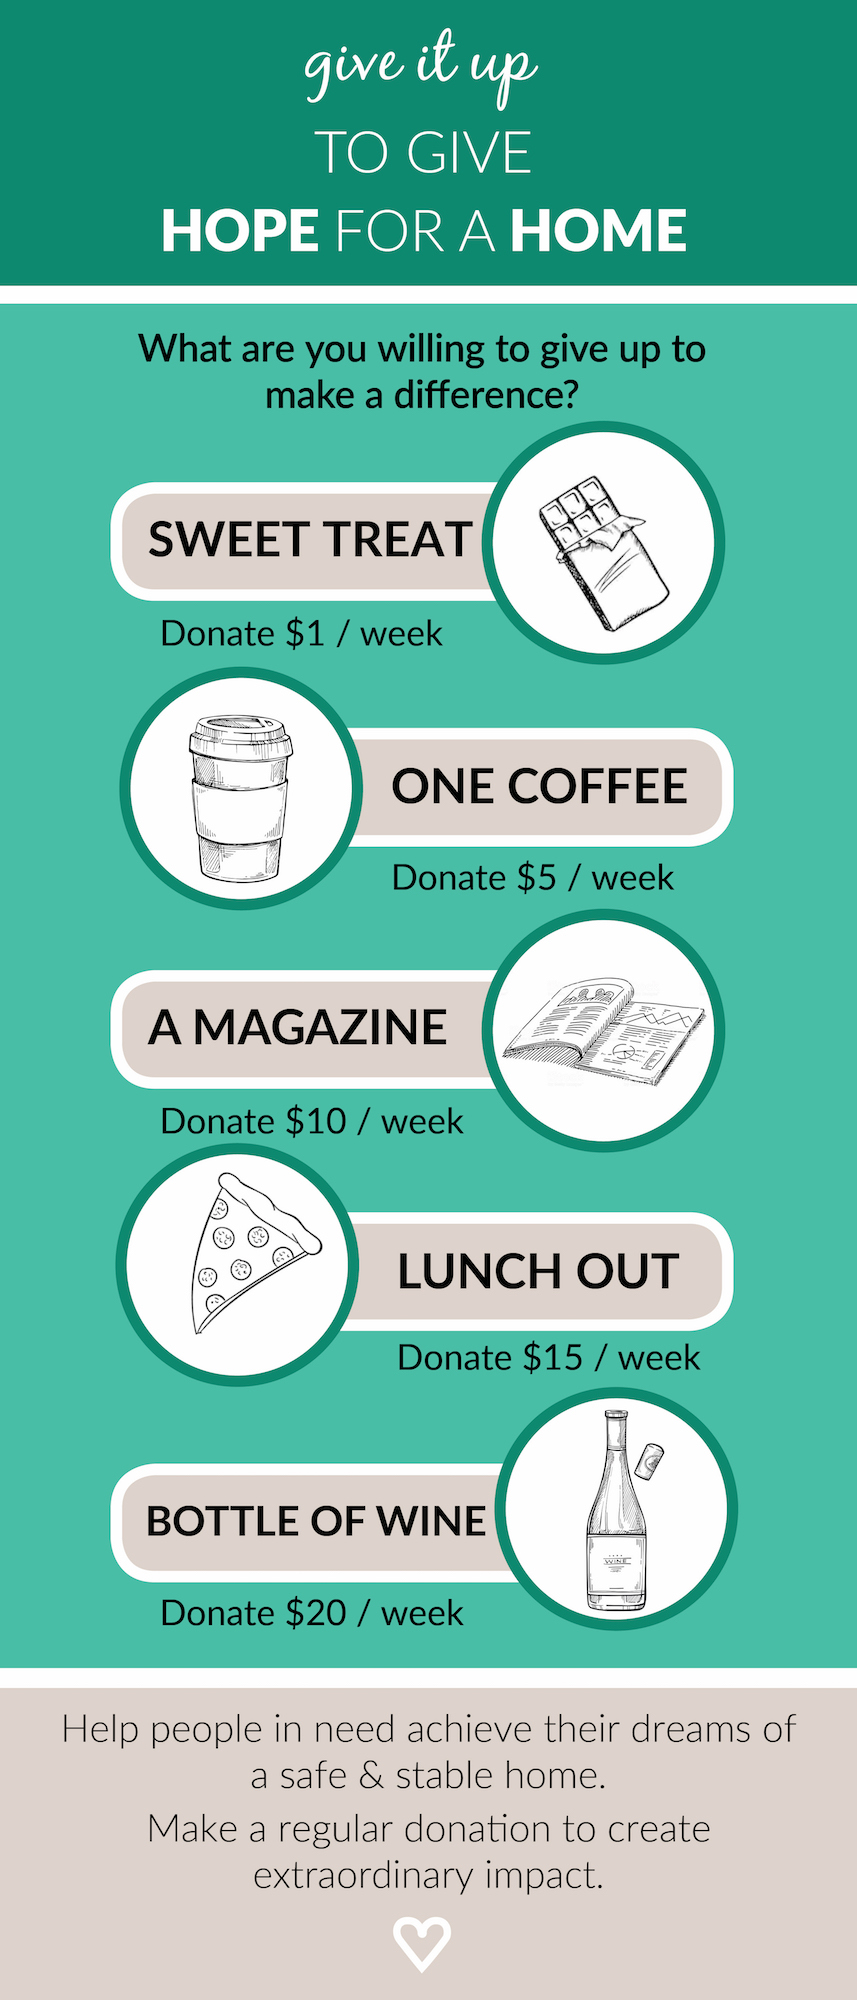 donation page hope for a home infographic.jpg